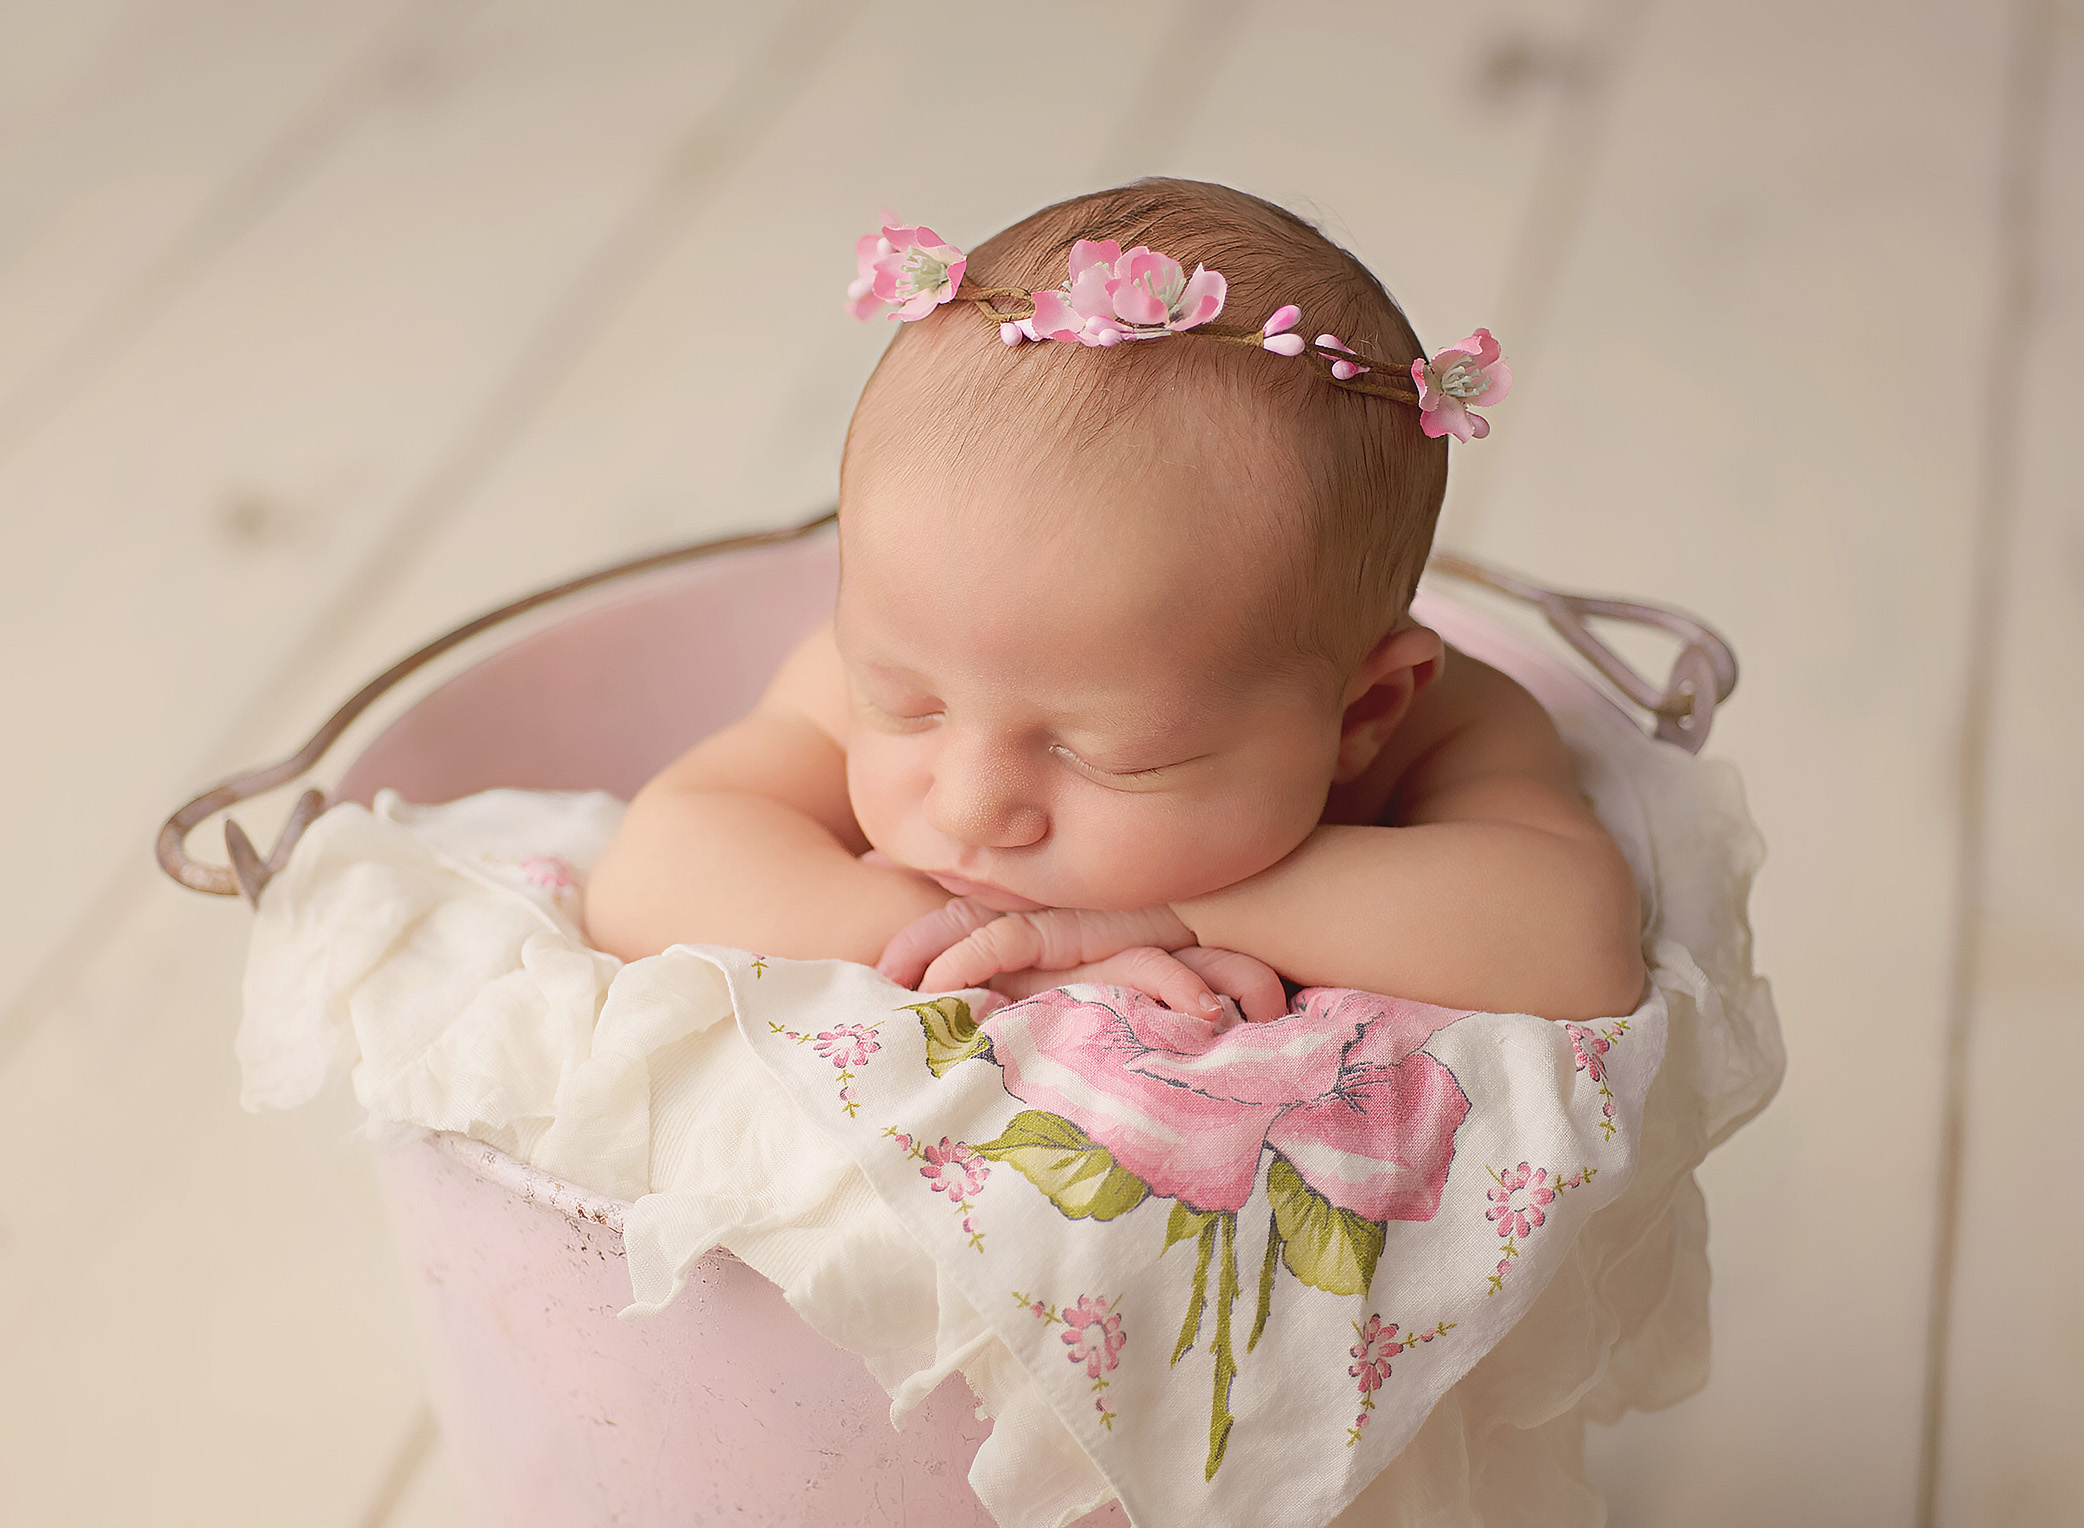 baby in pink bucket with floral crown